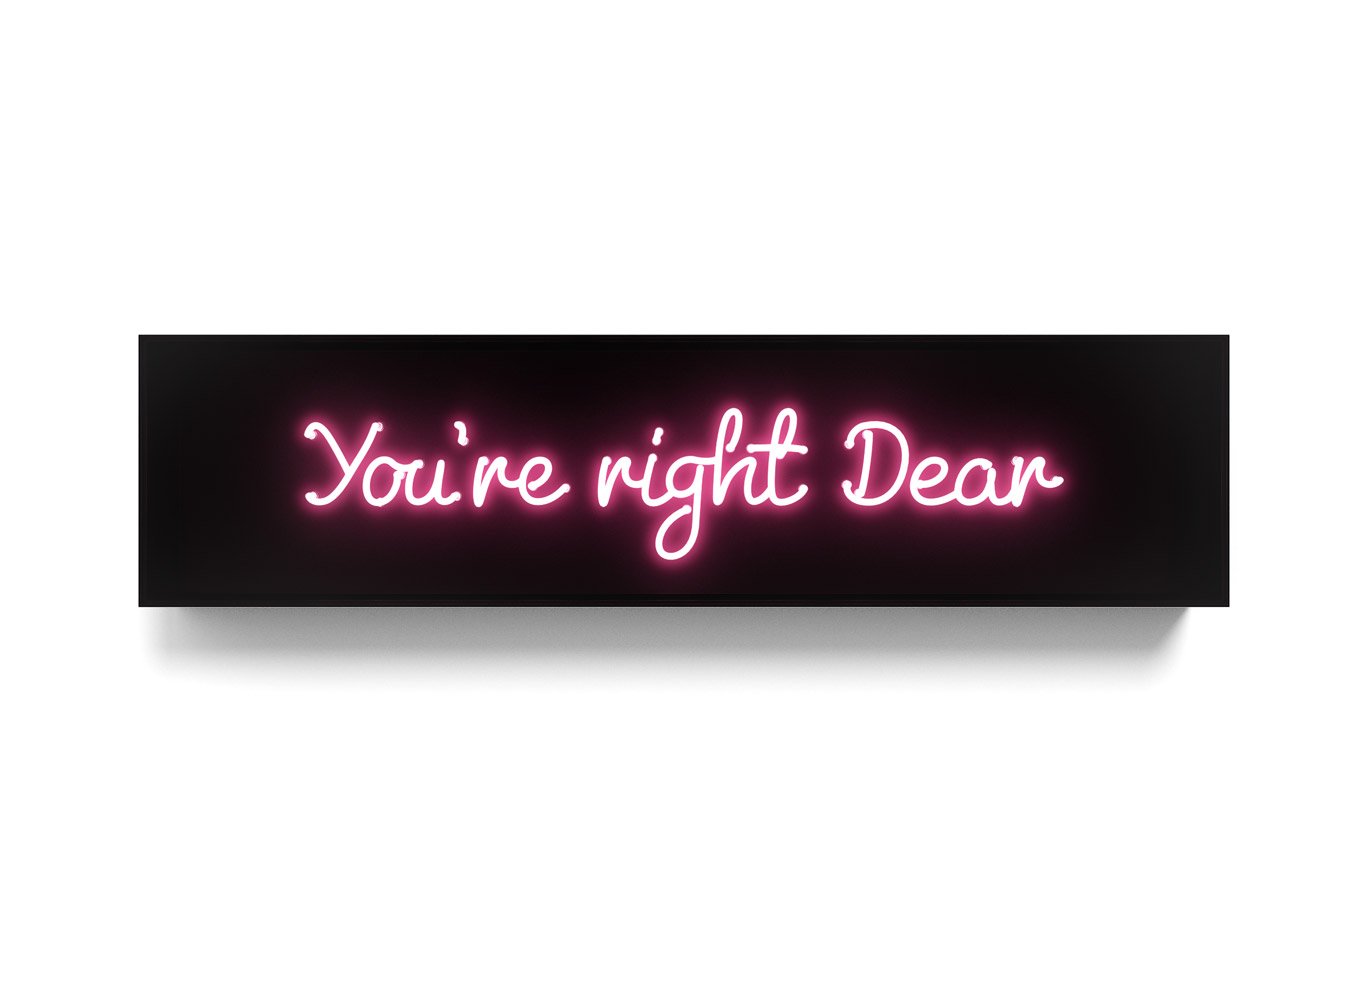 You Are Right Dear by David Drebin